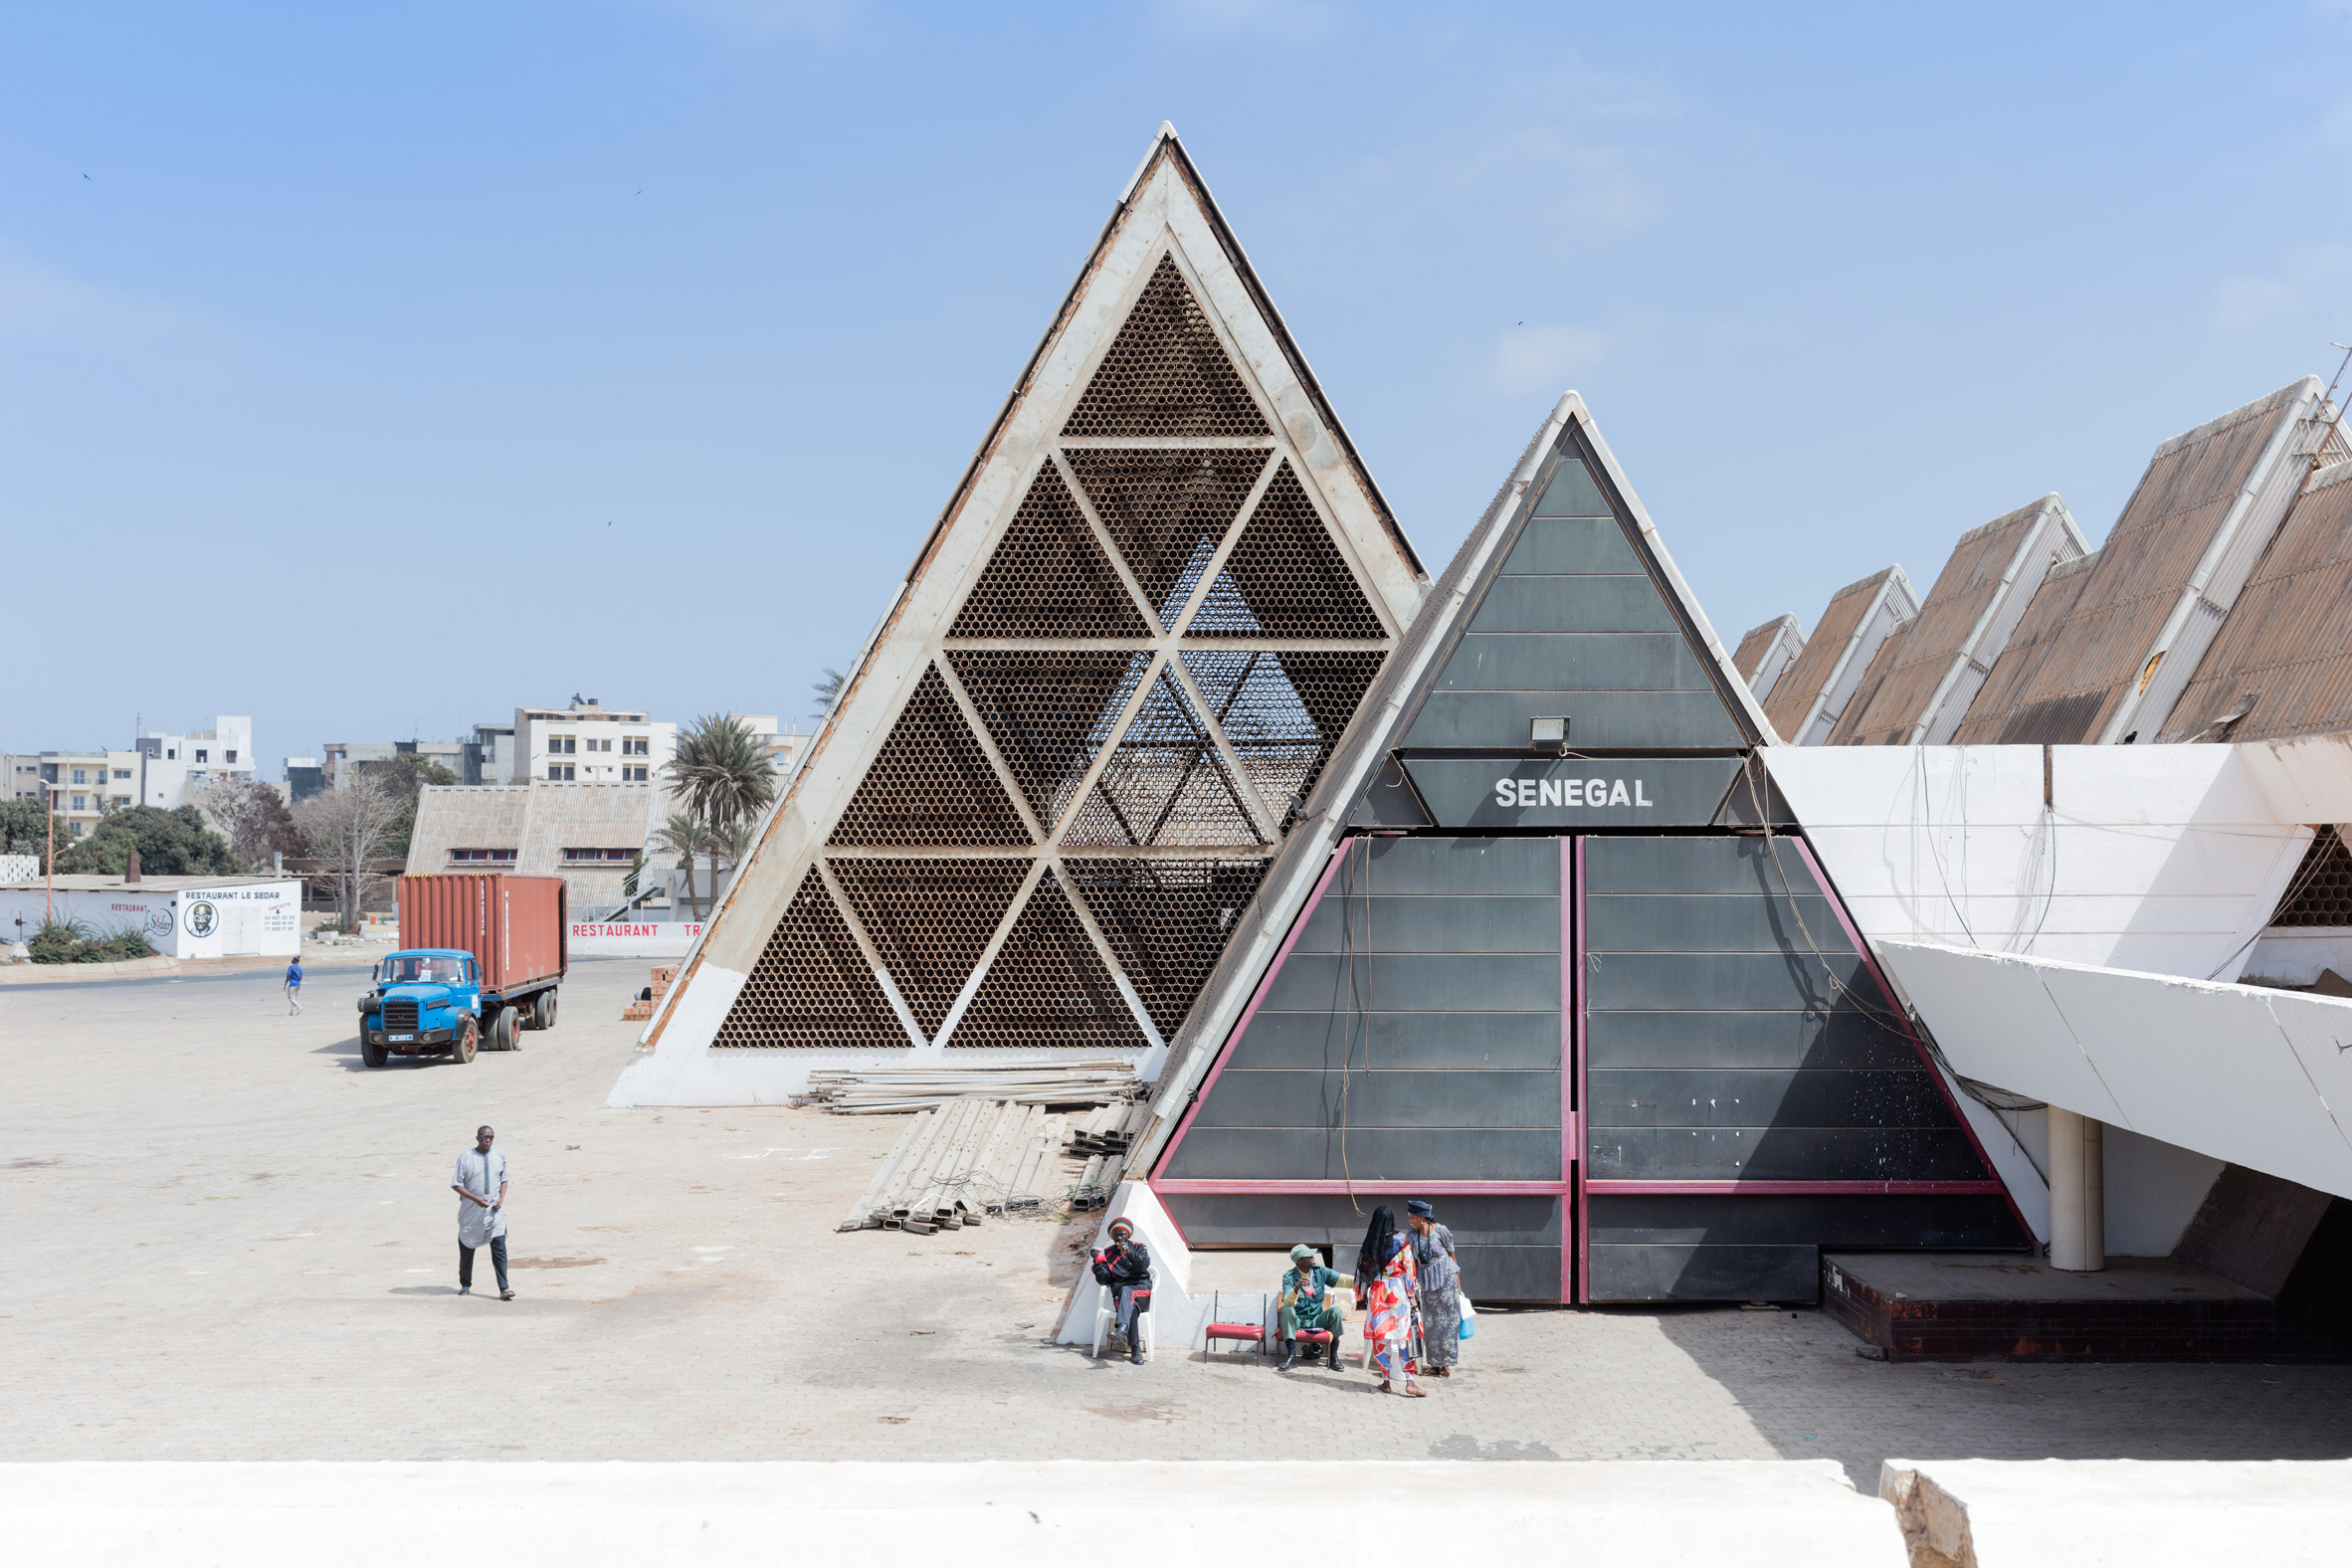 Exhibition reveals role of modernist architecture in liberated African nations